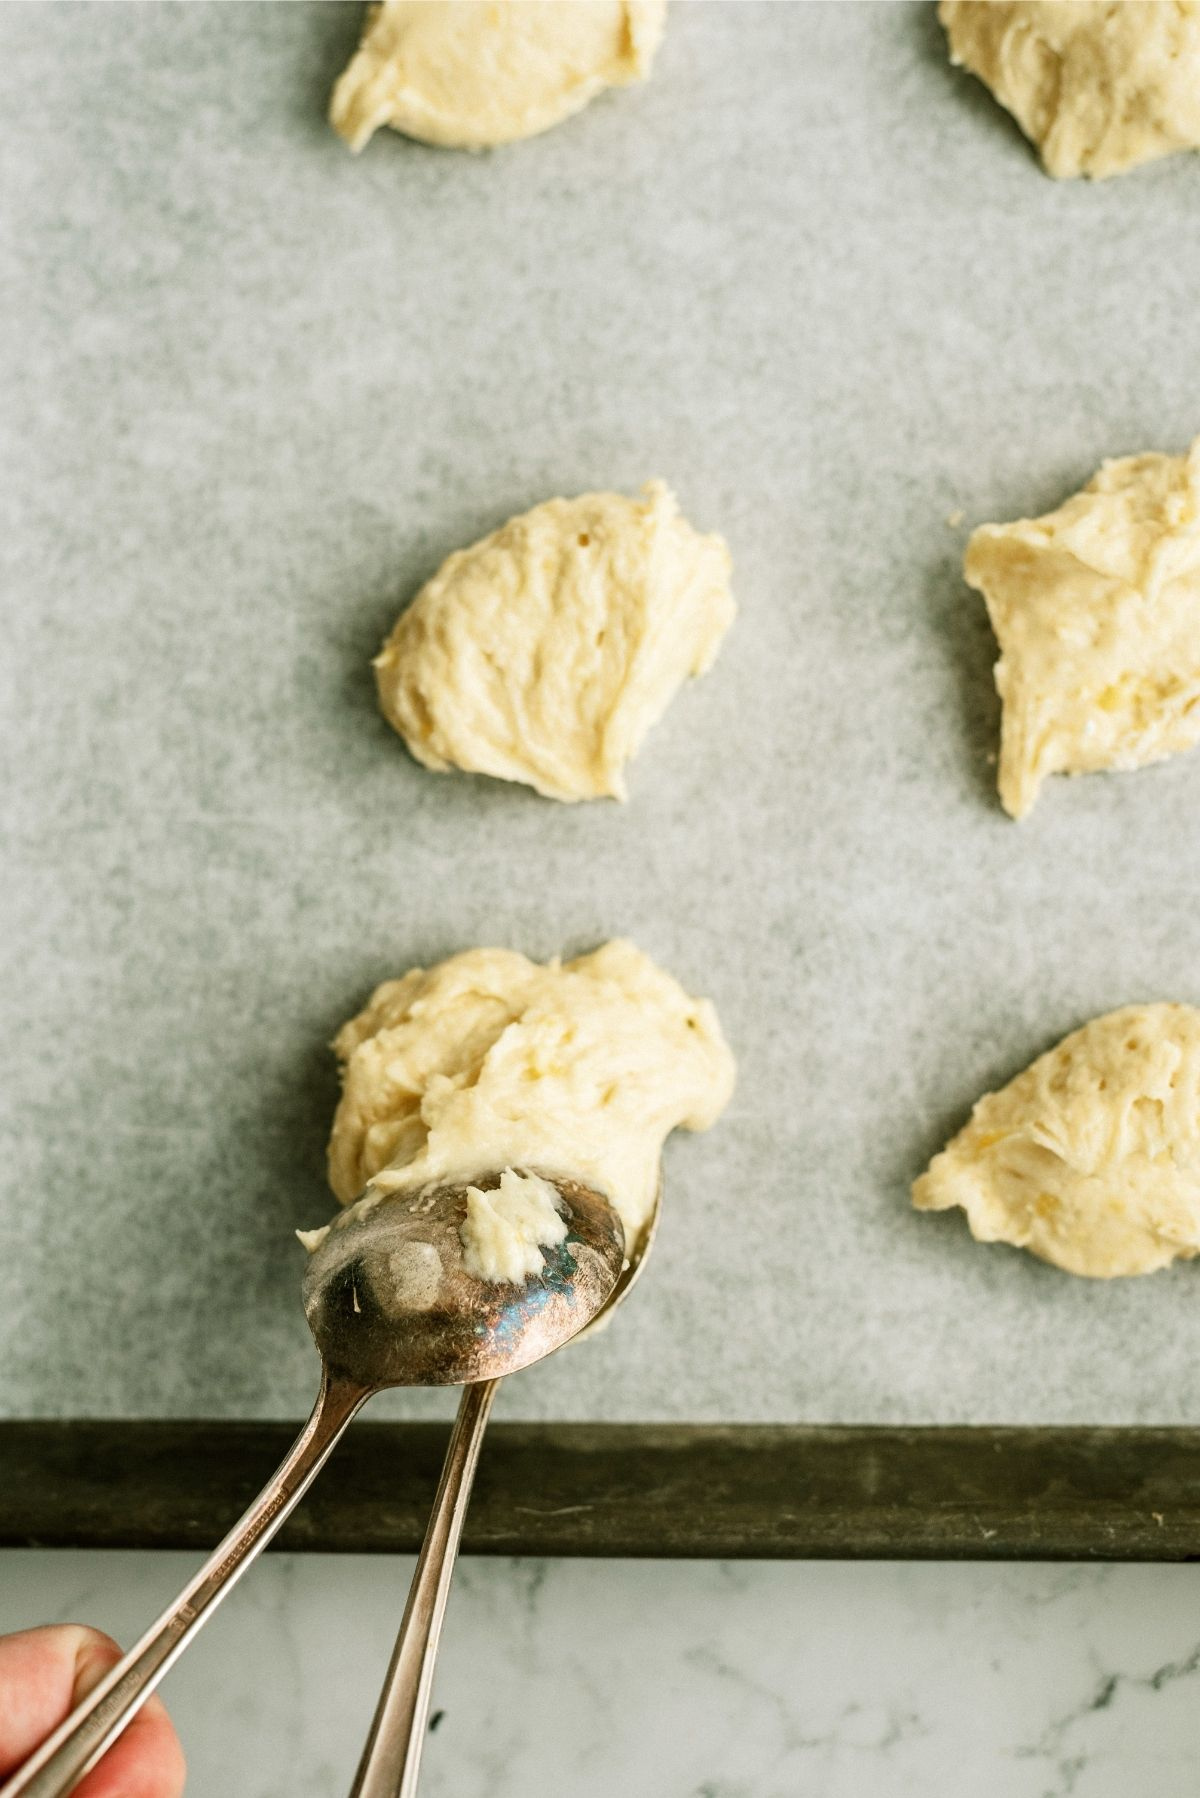 Dropping Cookie batter on baking sheet using table spoons